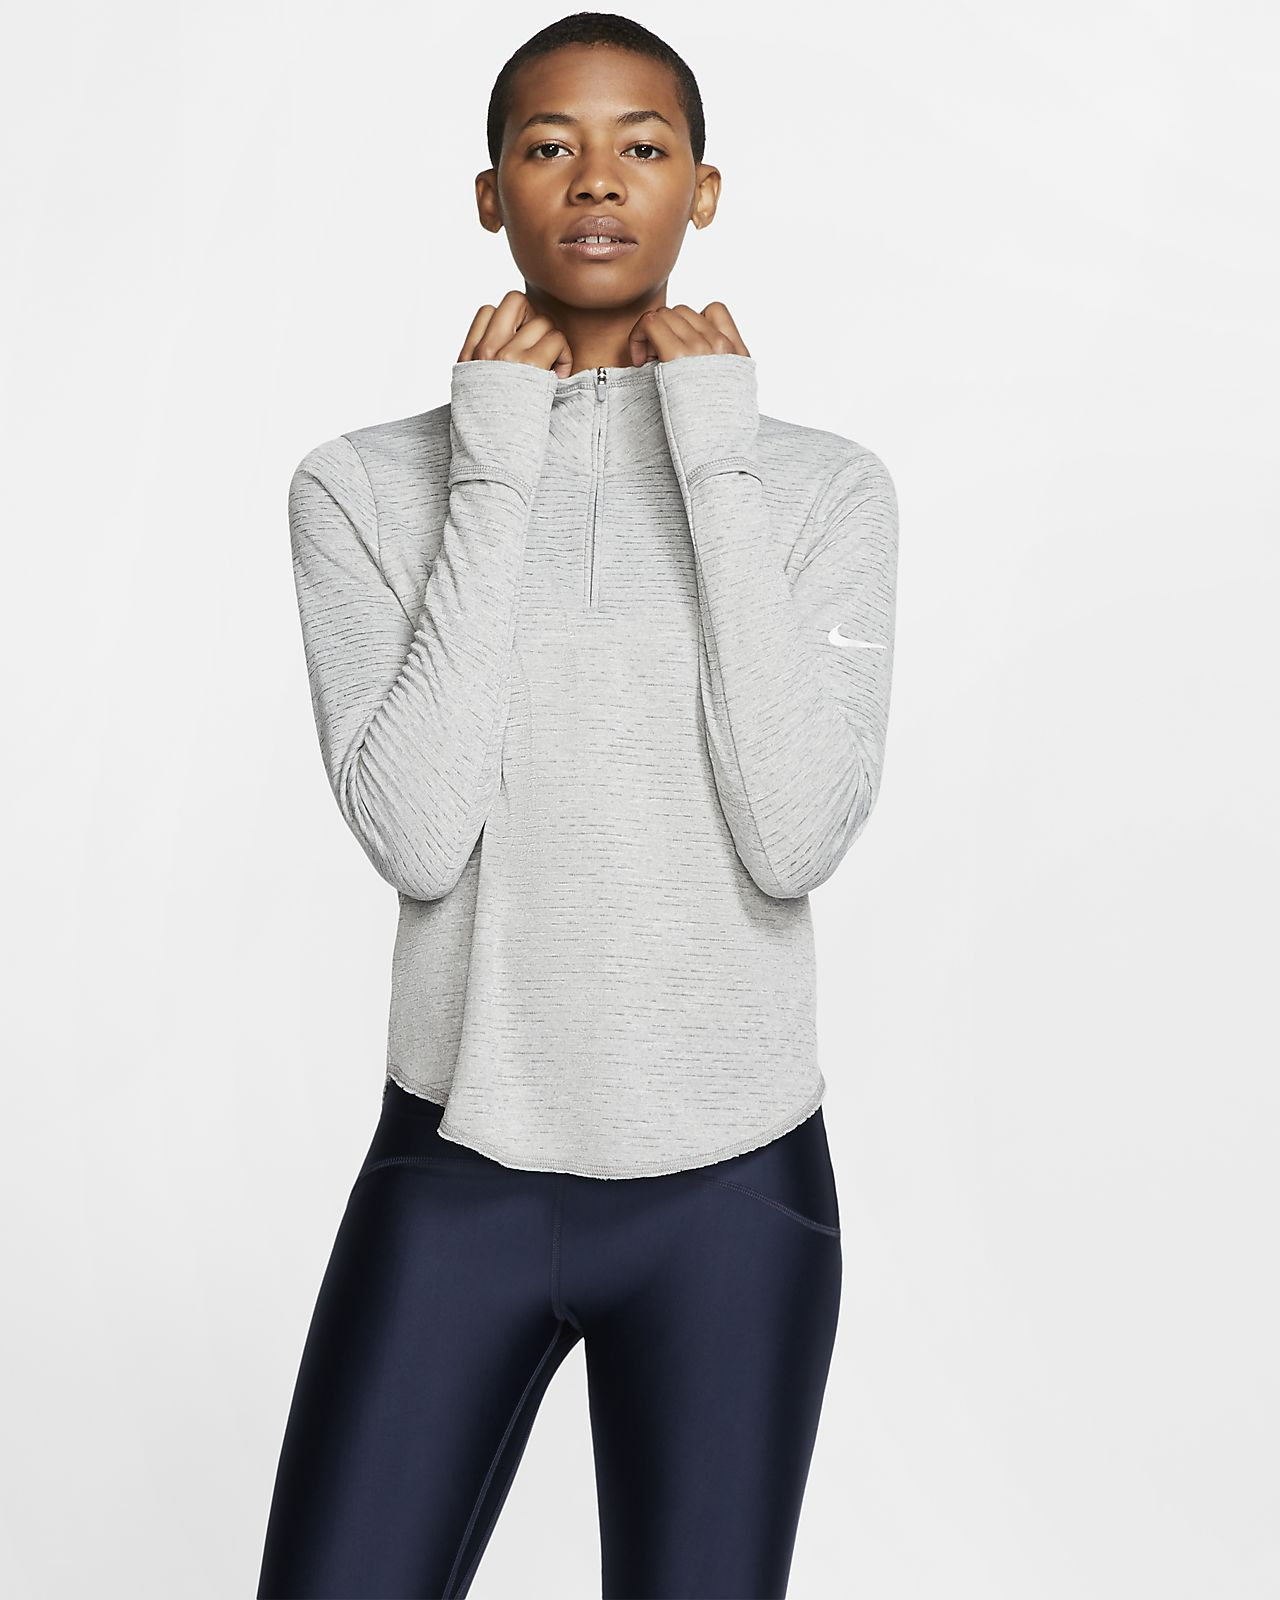 Nike Sphere Element Women's Half-Zip Running Top